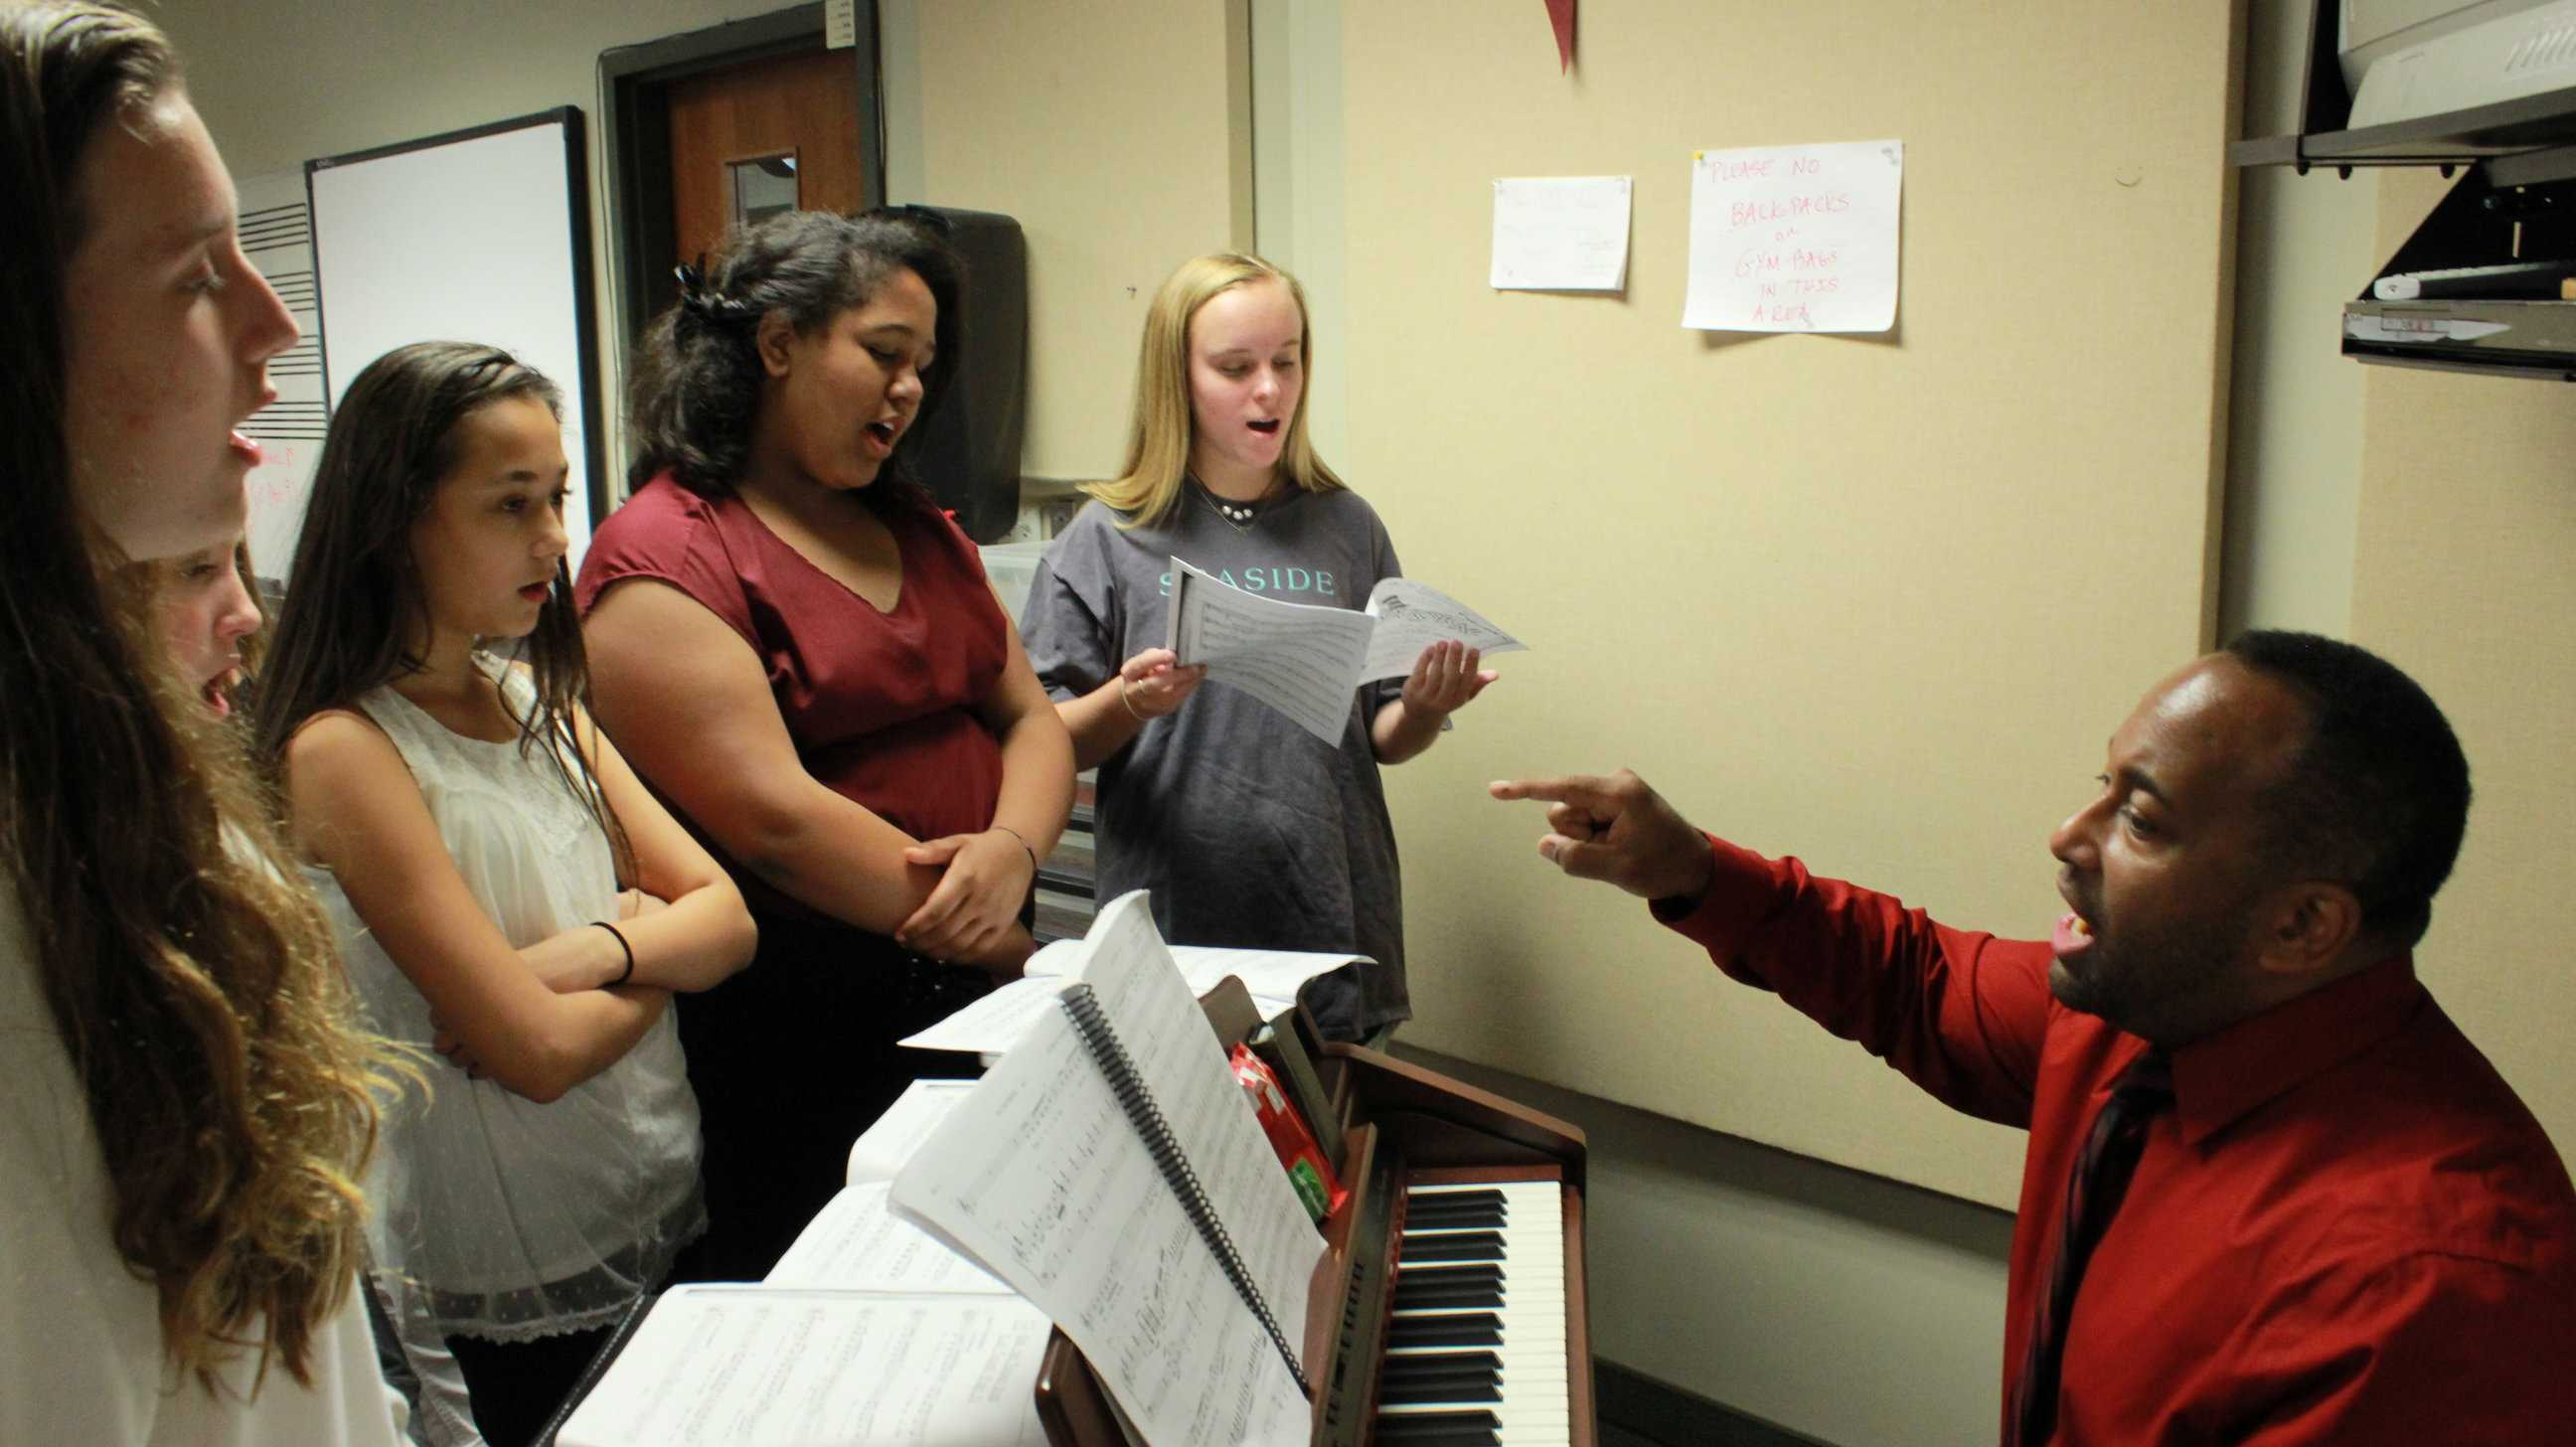 Students showcase their singing voices with Dennis Whitehead for the first part of their audition. All auditionees sang together to test their harmonies, and some were asked to do solos for further evaluation.